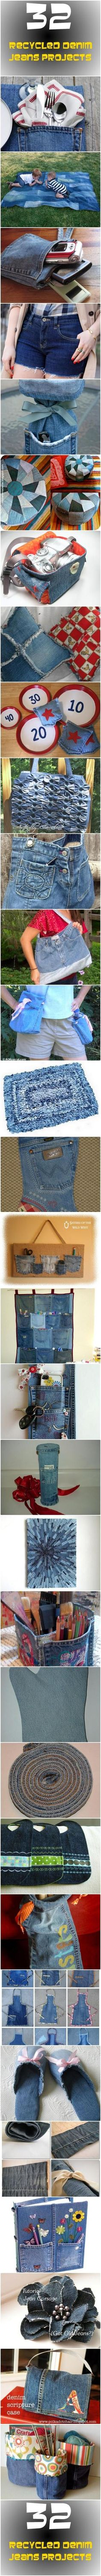 32 Recycled Denim Jeans Projects by ruth